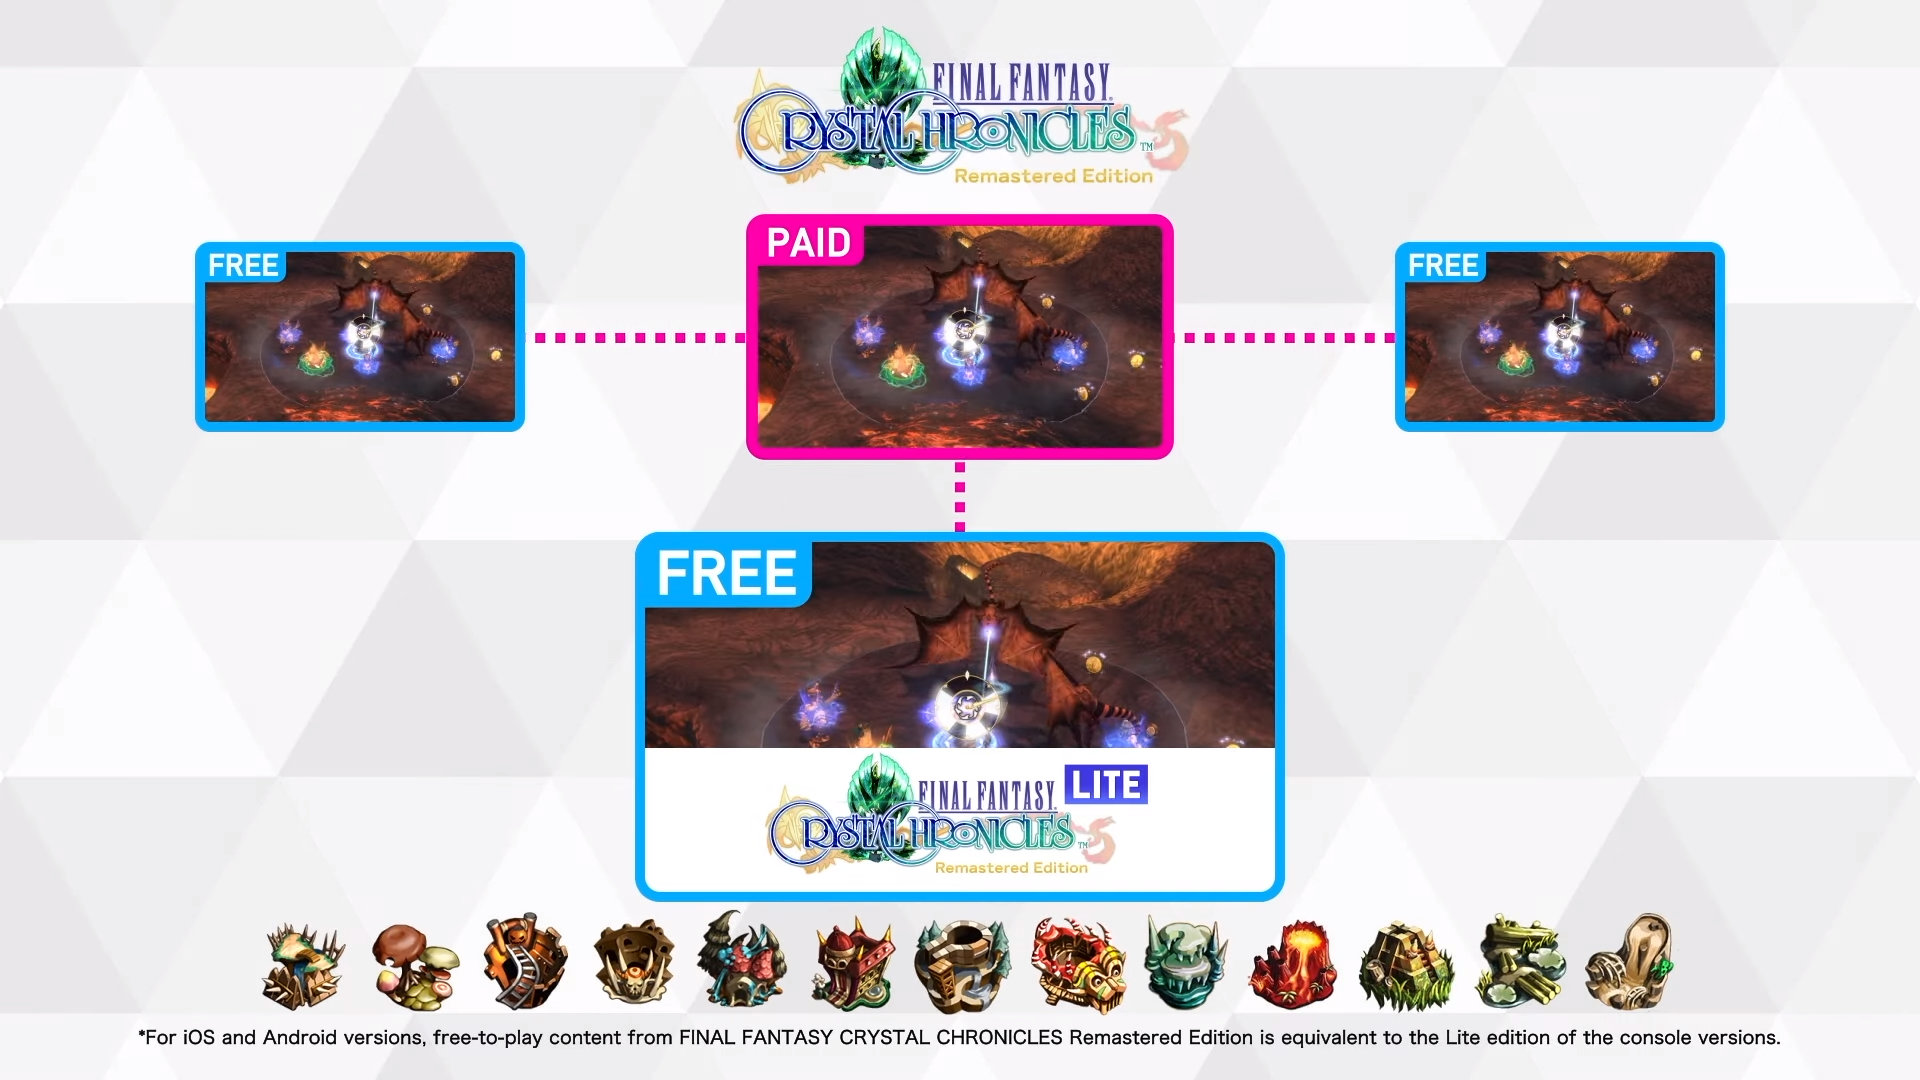 Final Fantasy Crystal Chronicles Remastered Edition Lite paid free